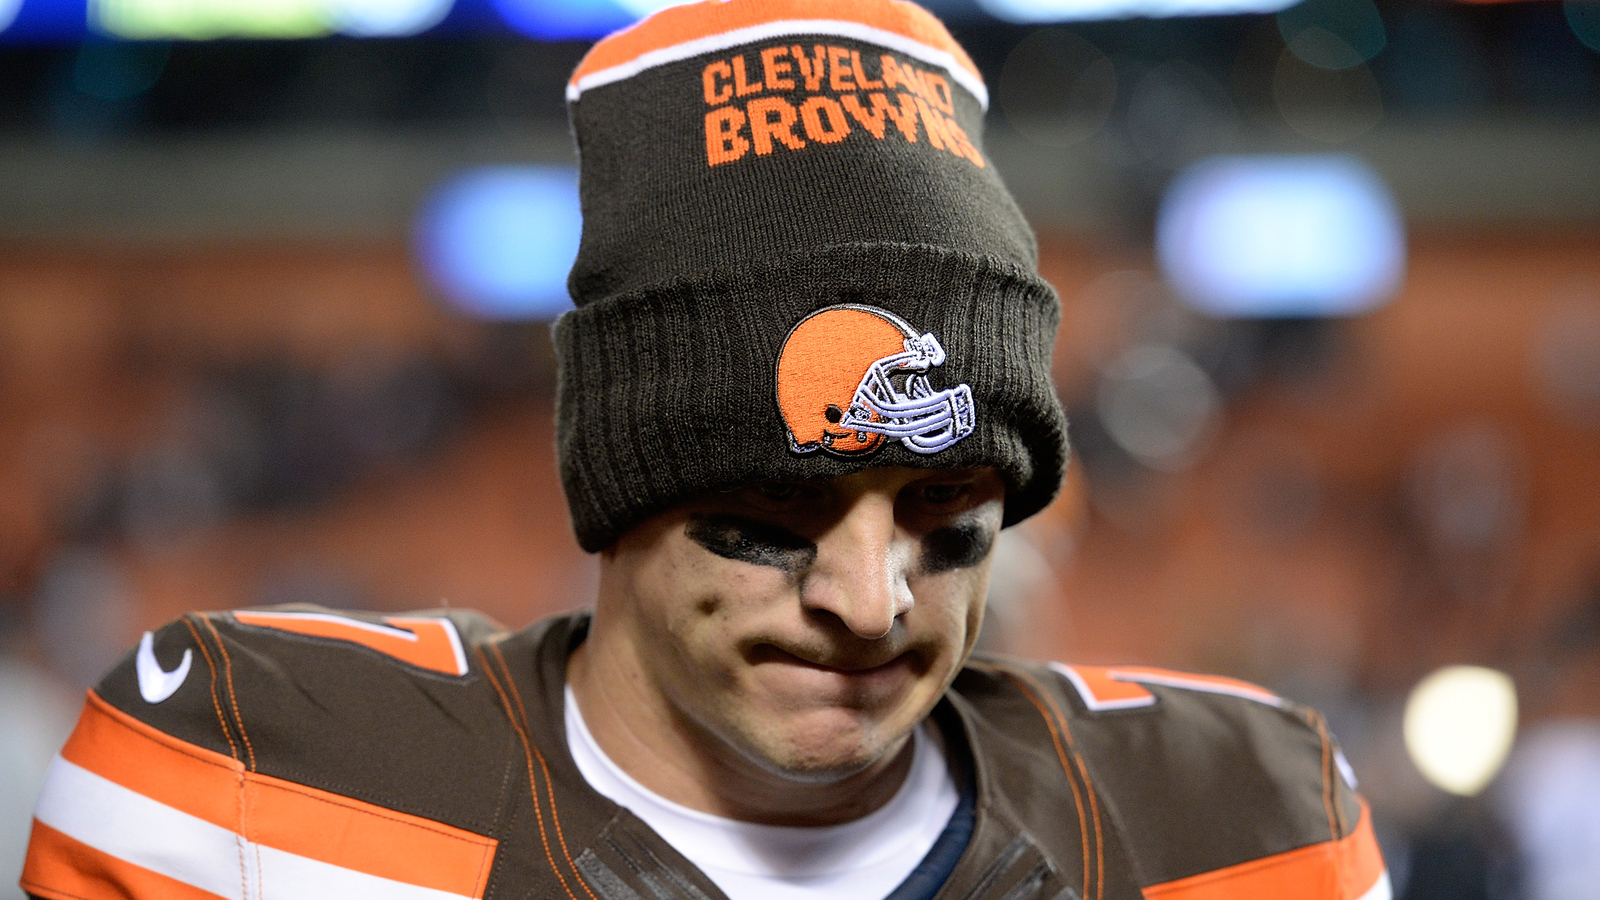 The Cleveland Browns lose to Ravens as only the Browns know how